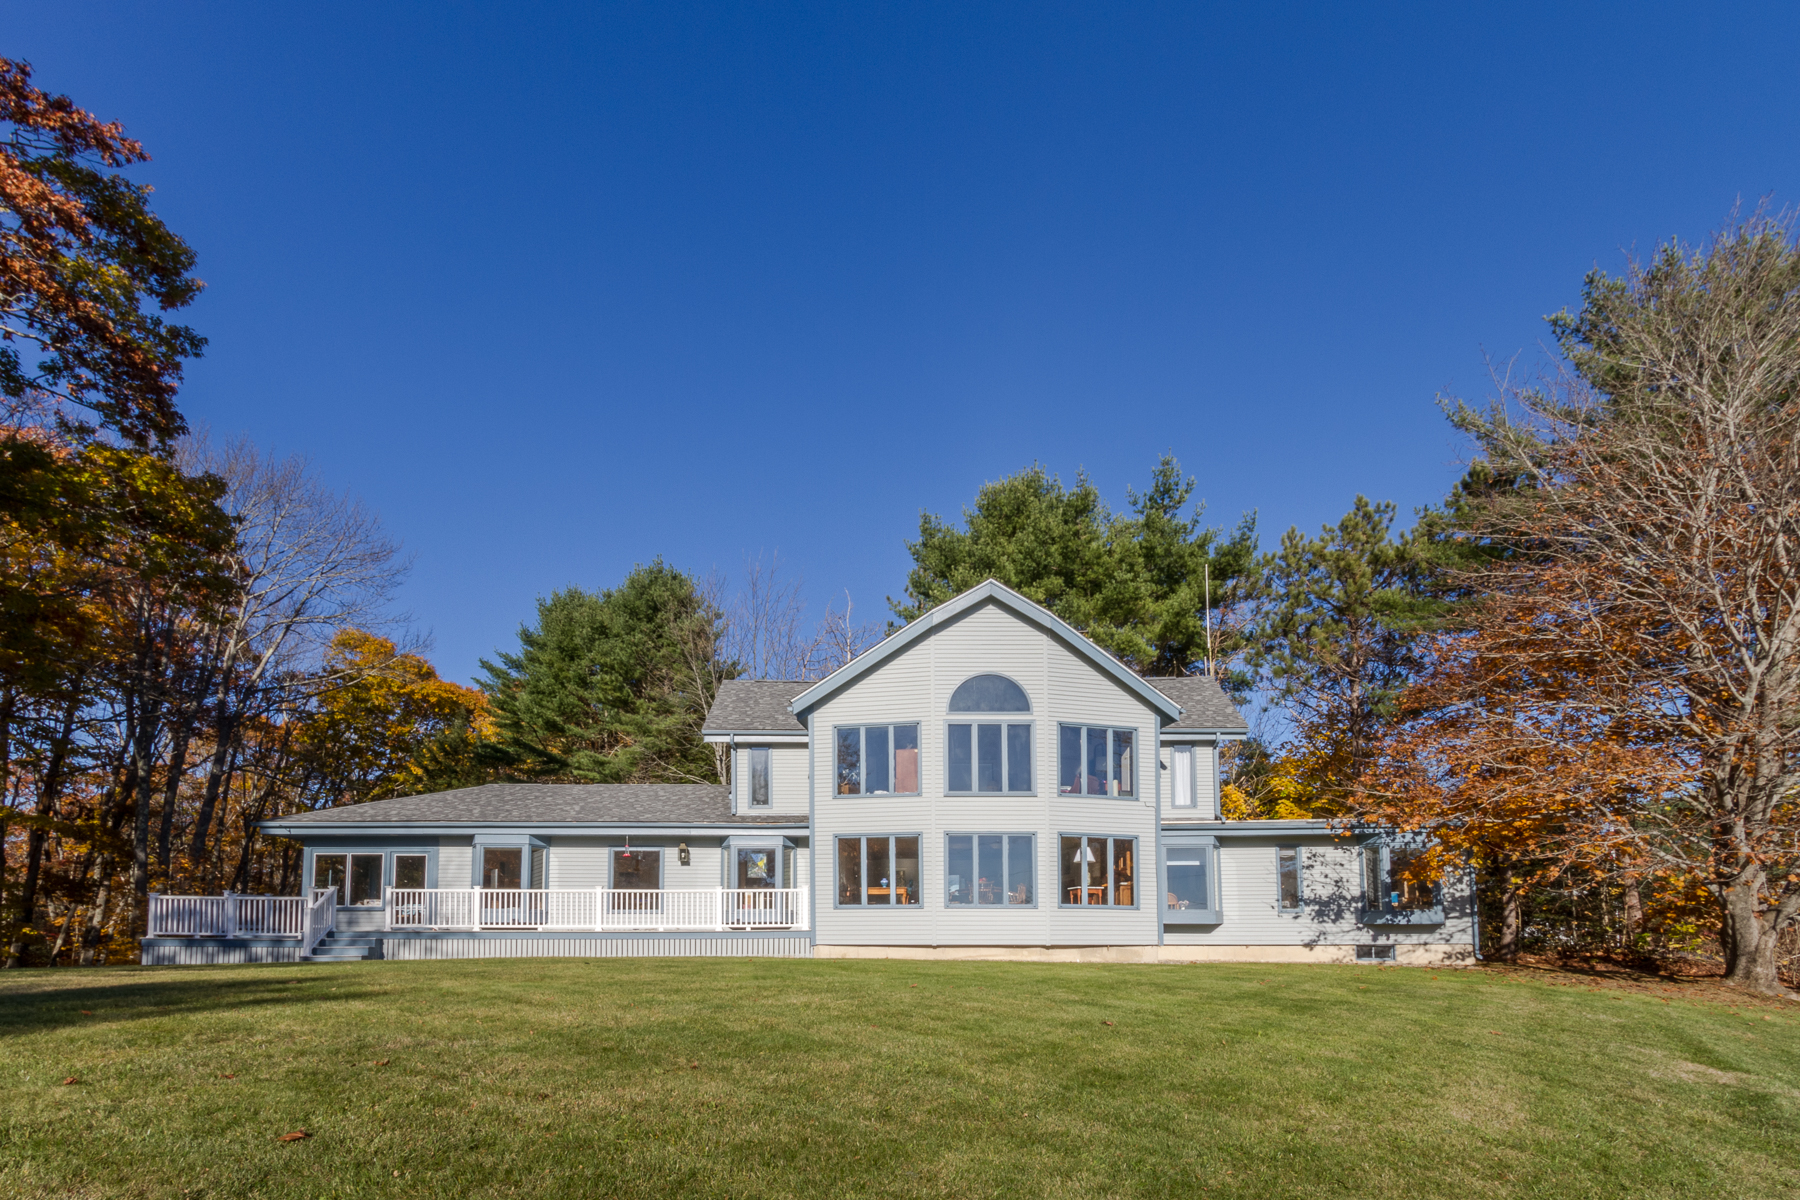 Single Family Home for Sale at 53 Westview Road Damariscotta, Maine 04543 United States